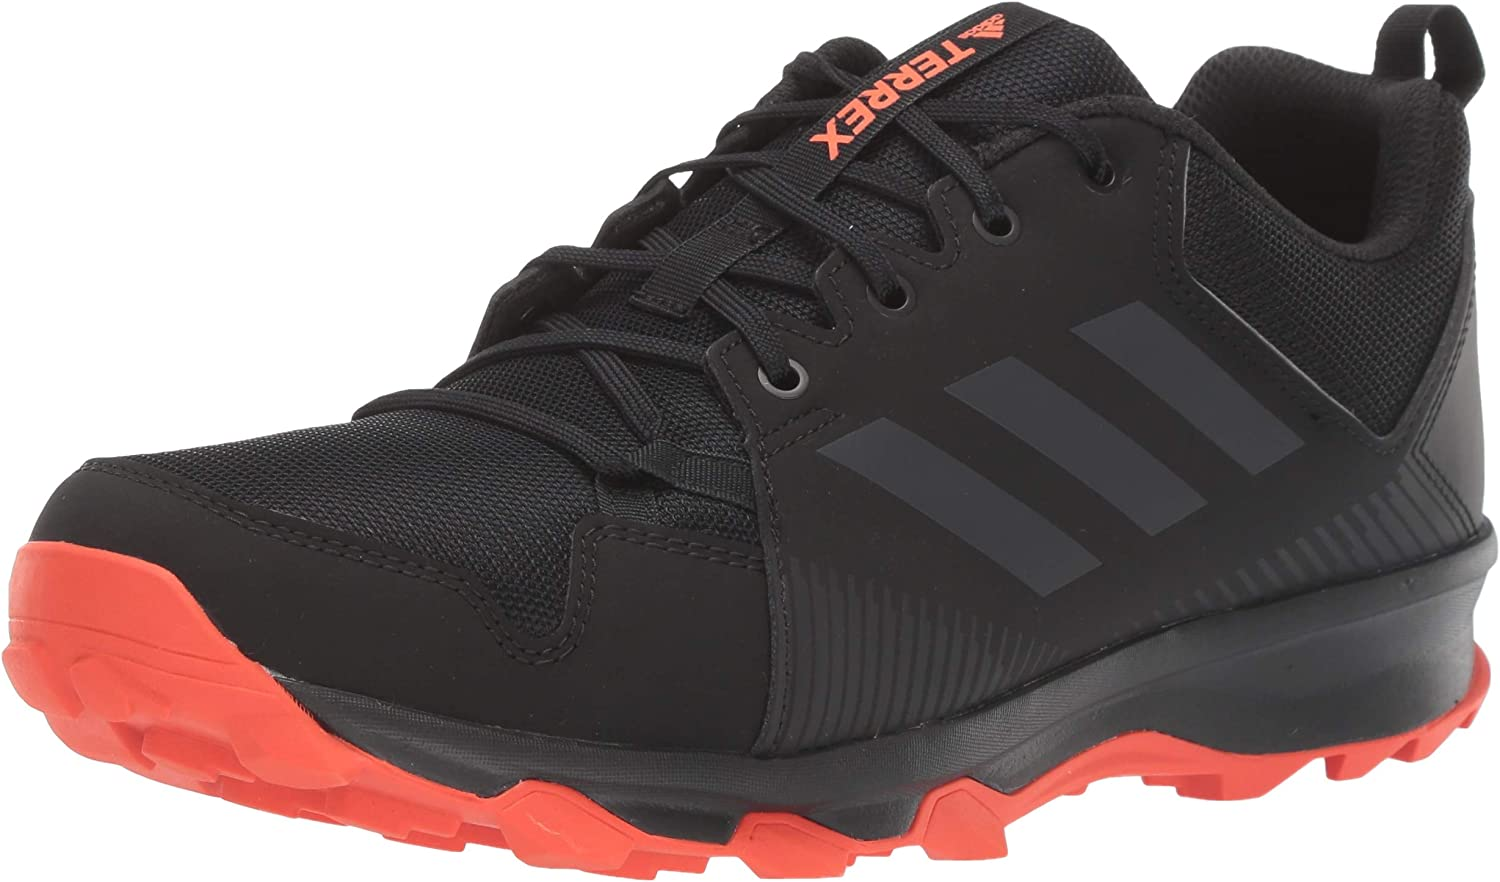 adidas Outdoor Men s Terrex Tracerocker Trail Running Shoe, Black Carbon Active Orange, 14 D US